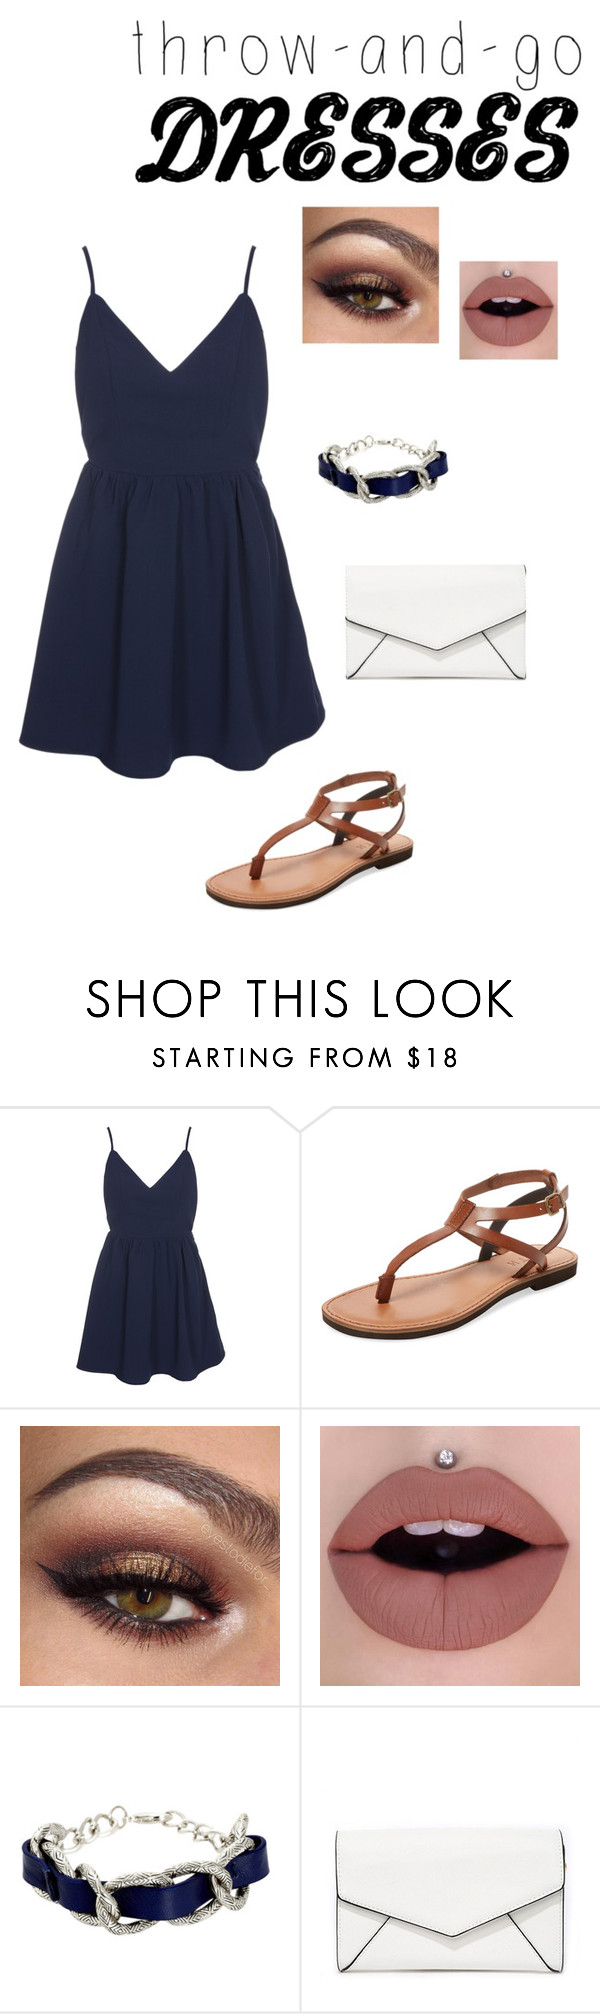 """""""Date night with Grayson"""" by stylebytwo ❤ liked on Polyvore featuring Glamorous, Firth, House of Harlow 1960 and LULUS"""